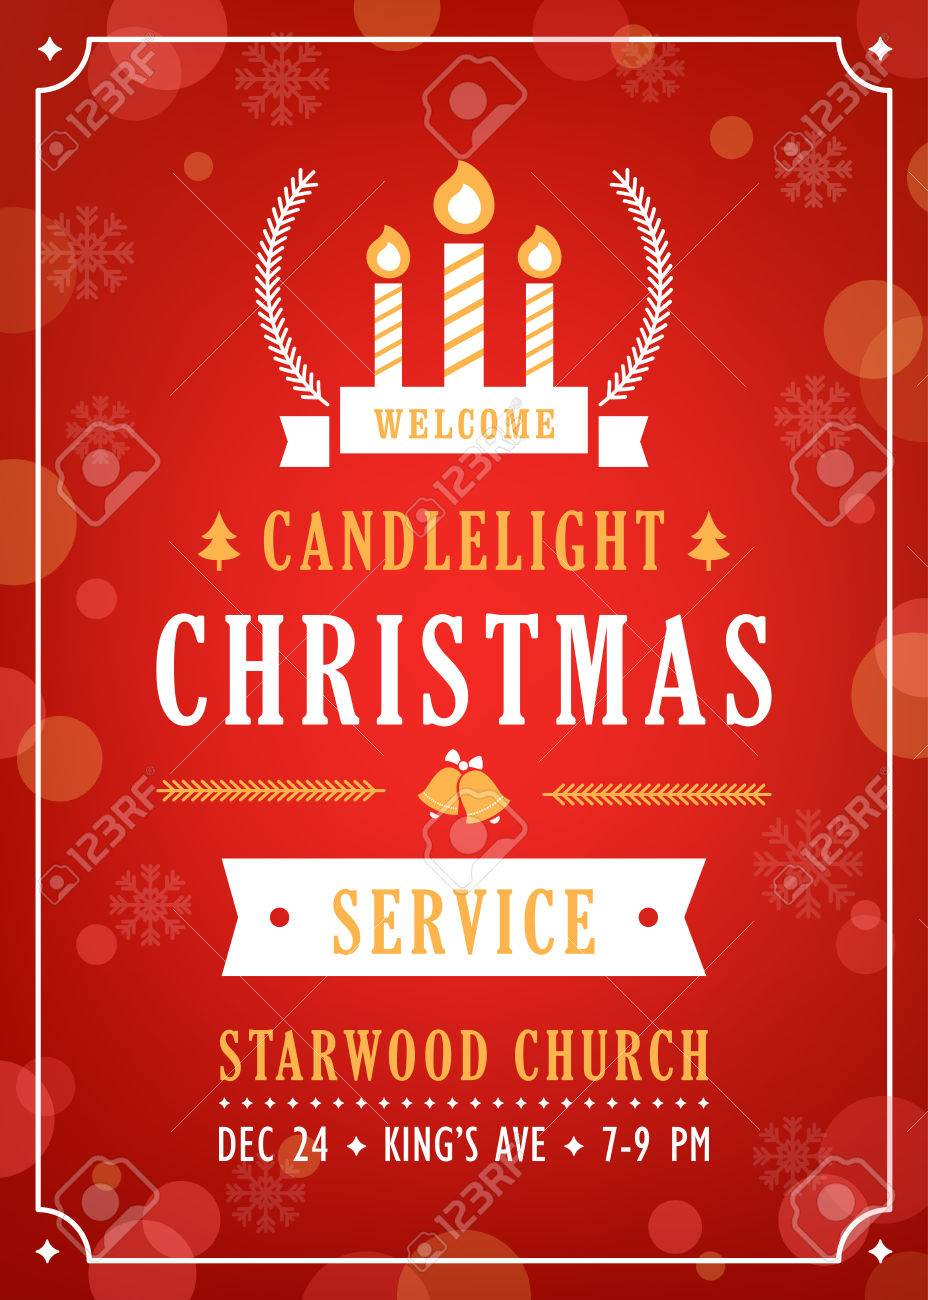 christmas candlelight service church invitation vector template